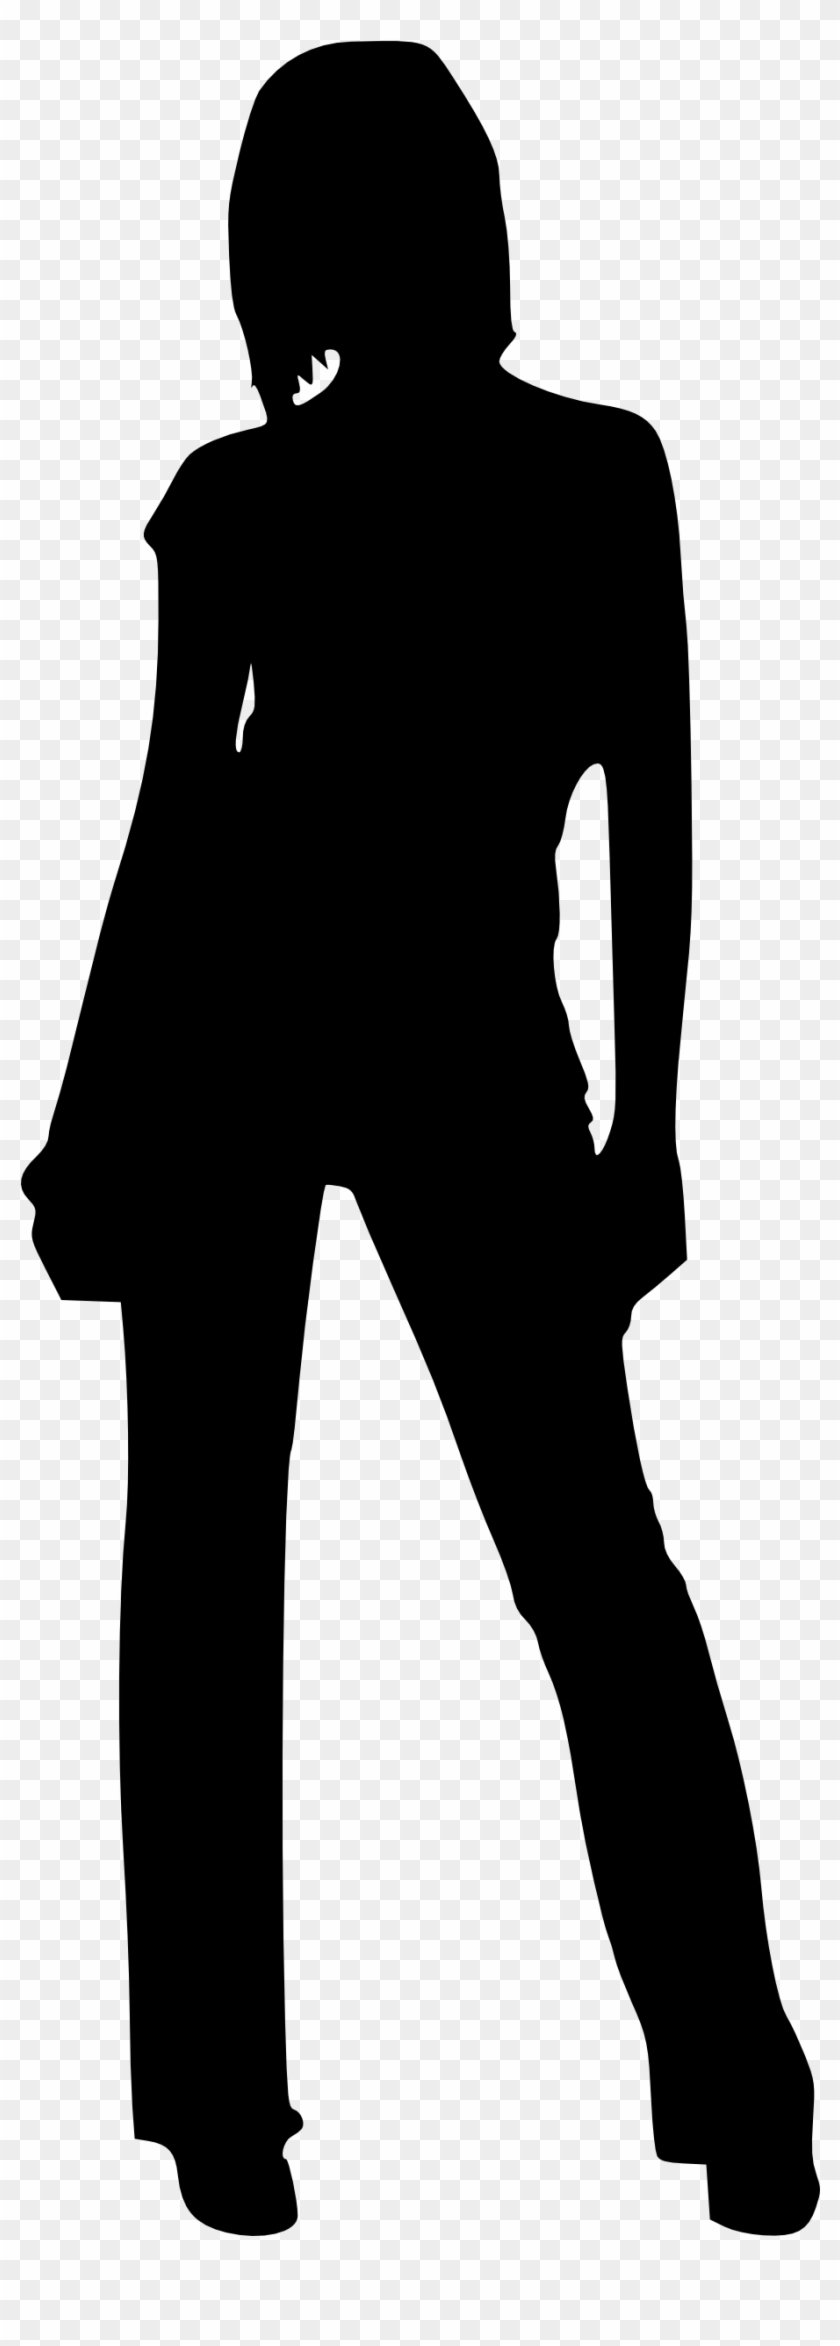 Lady With Hat Silhouette - Baseball Fielder Clipart #200460